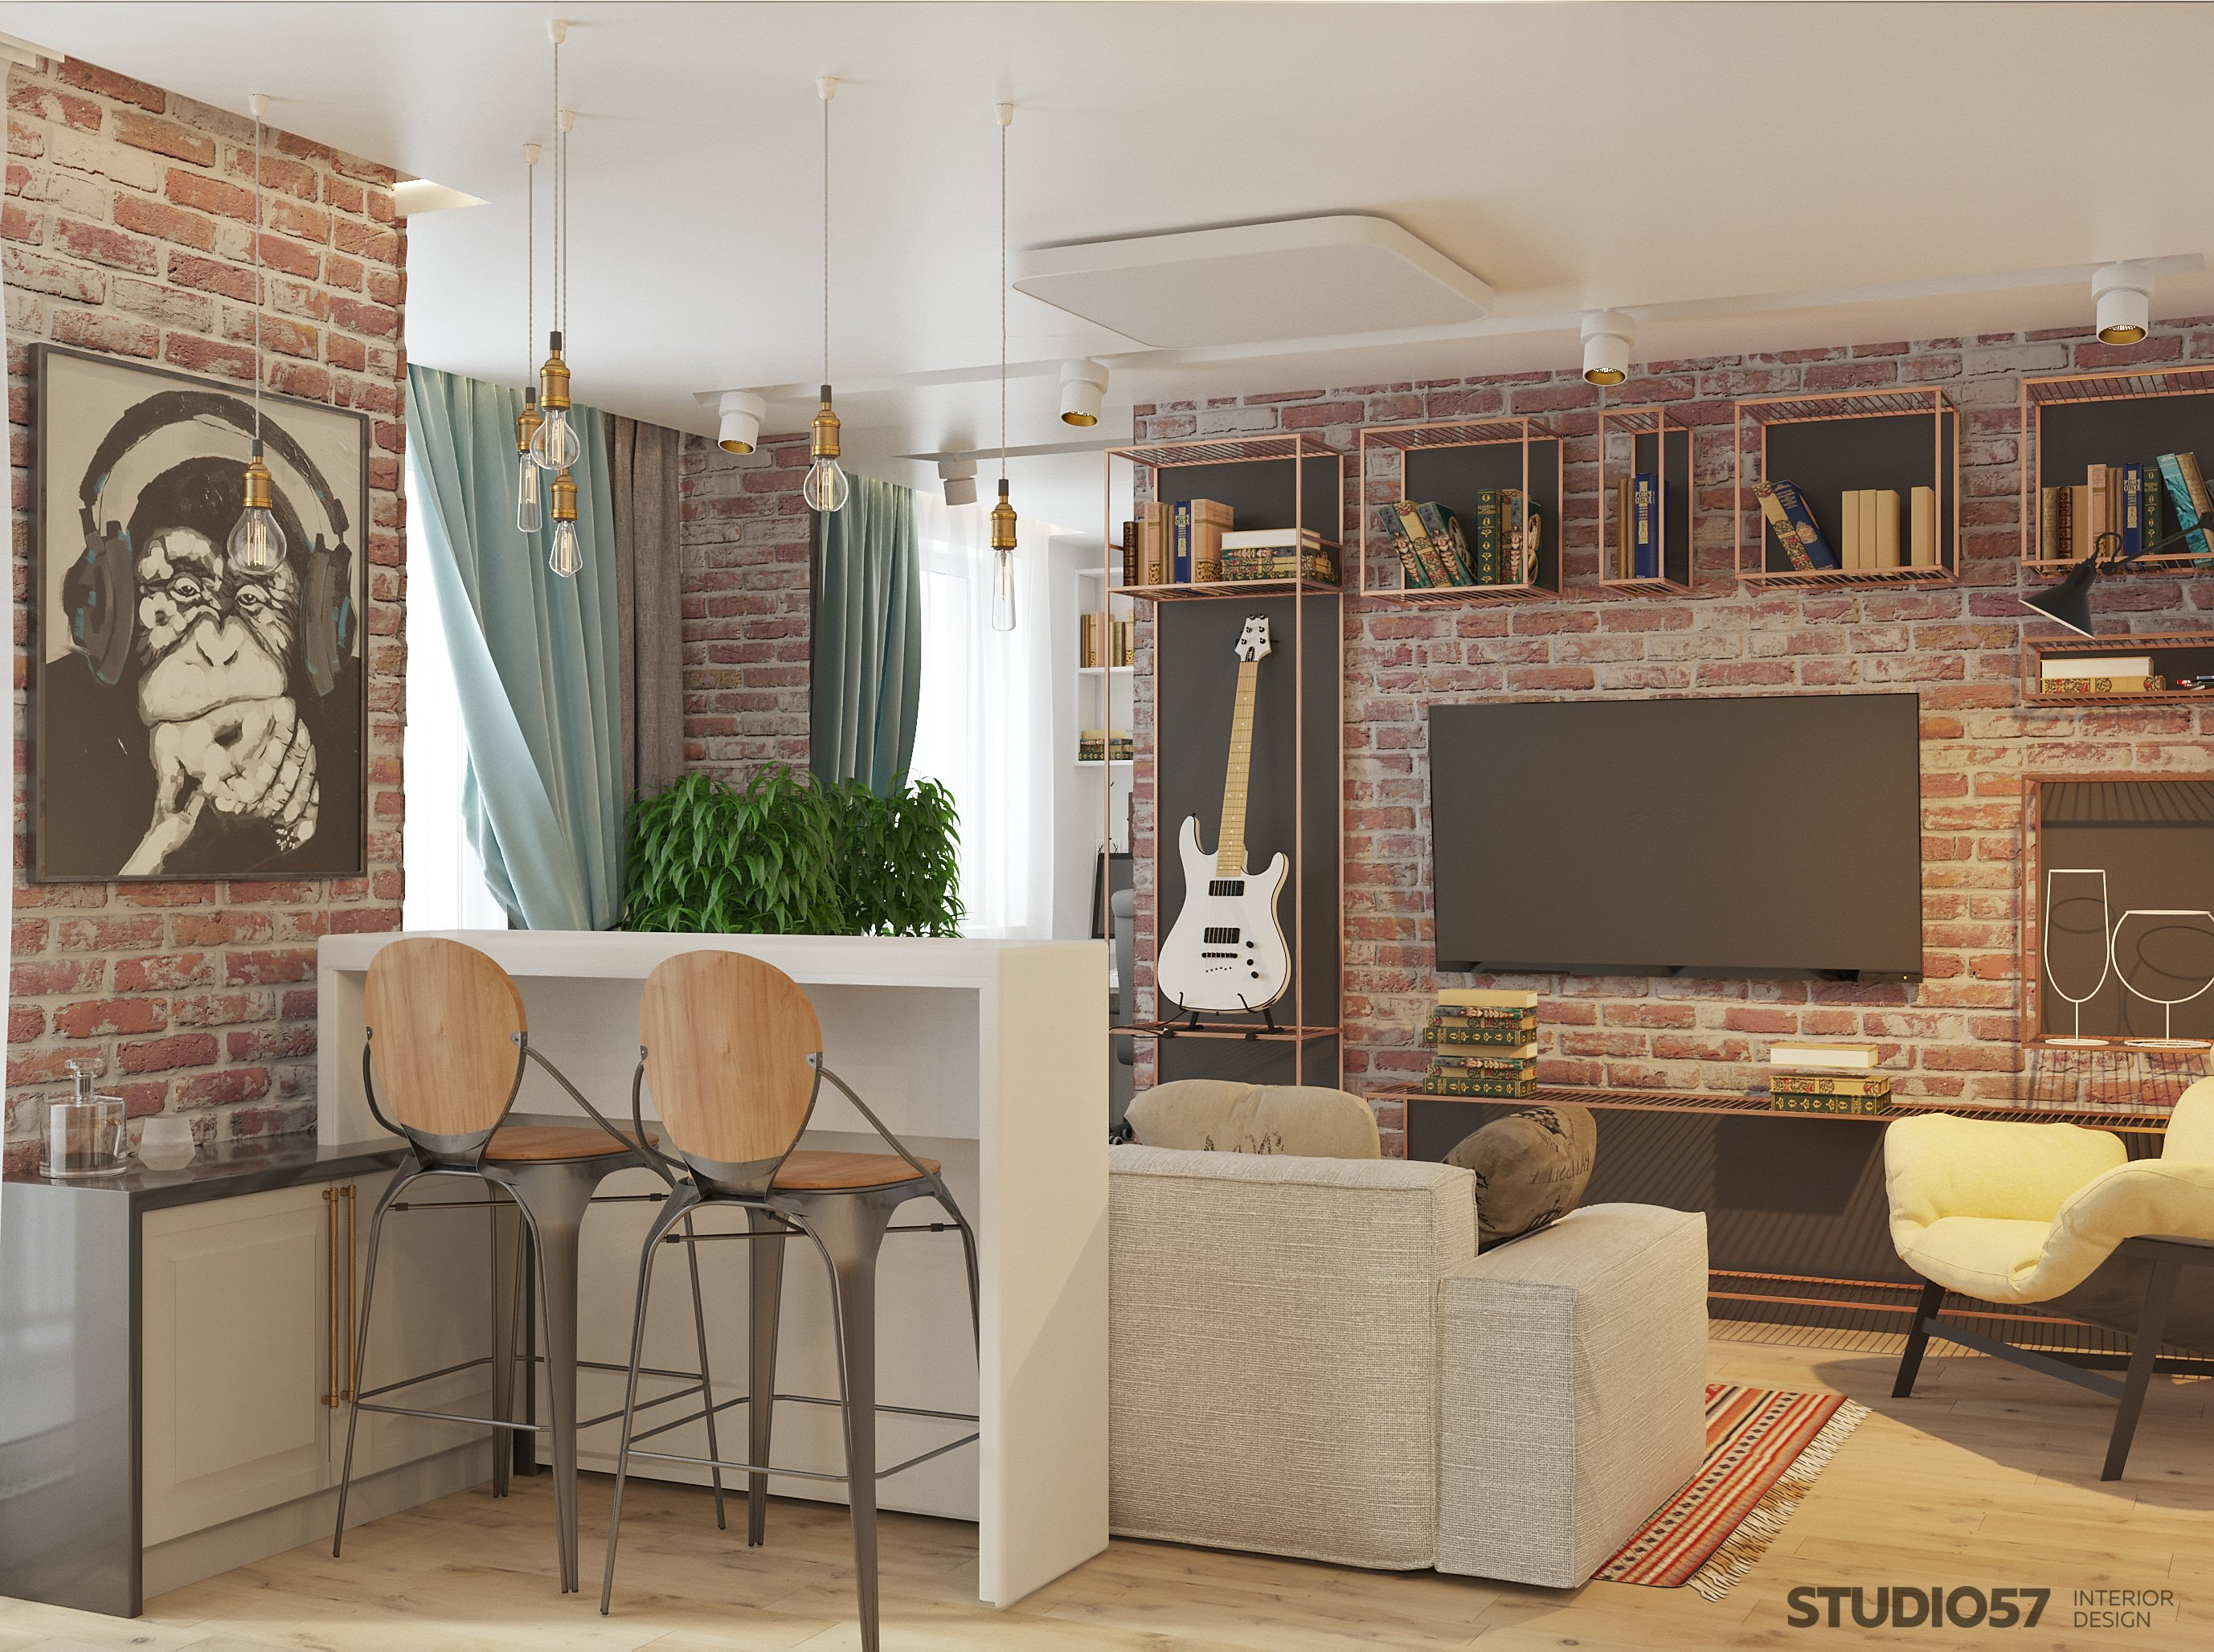 Living room with kitchen in loft style